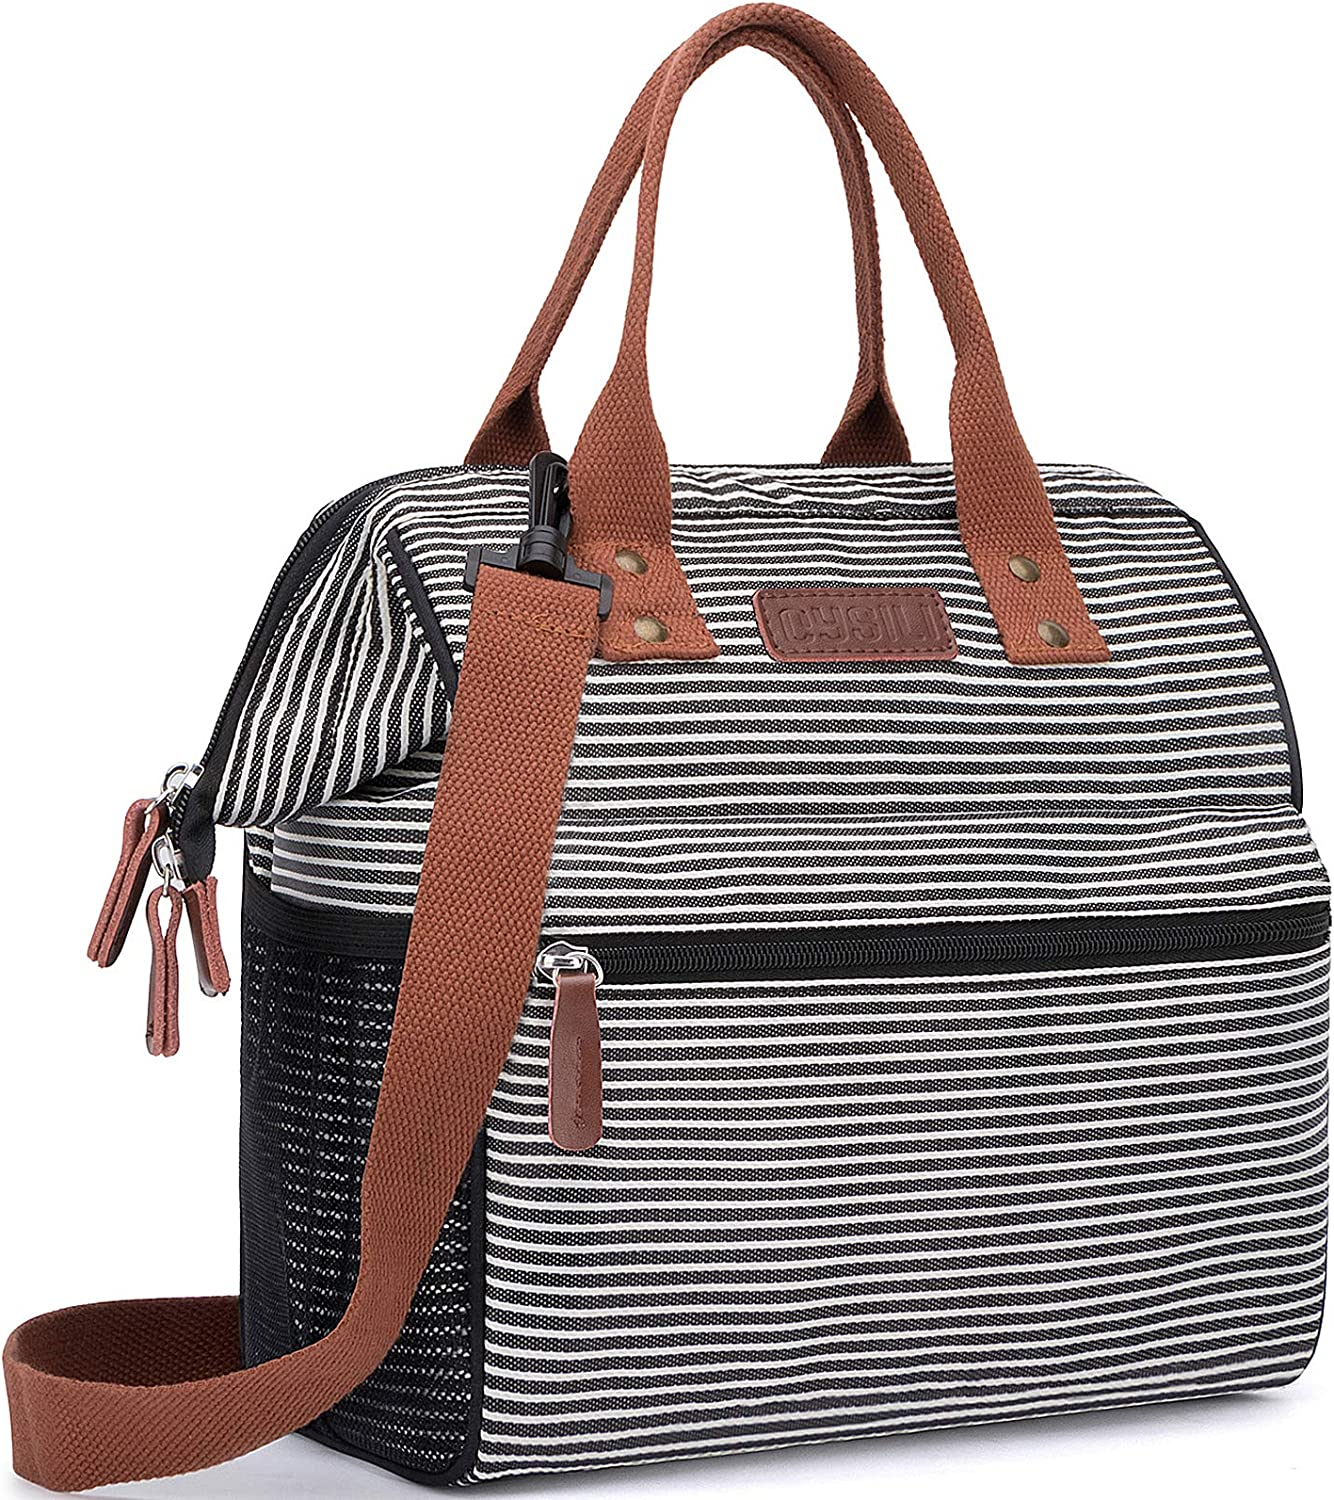 Insulated Lunch Bag, Wide-Open Lunch Box for Work/Picnic/Hiking/Beach/Fishing, Water-Resistant Leakproof Lunch Tote Bag for Women and Men (Black&White Stripe+Shoulder Strap)